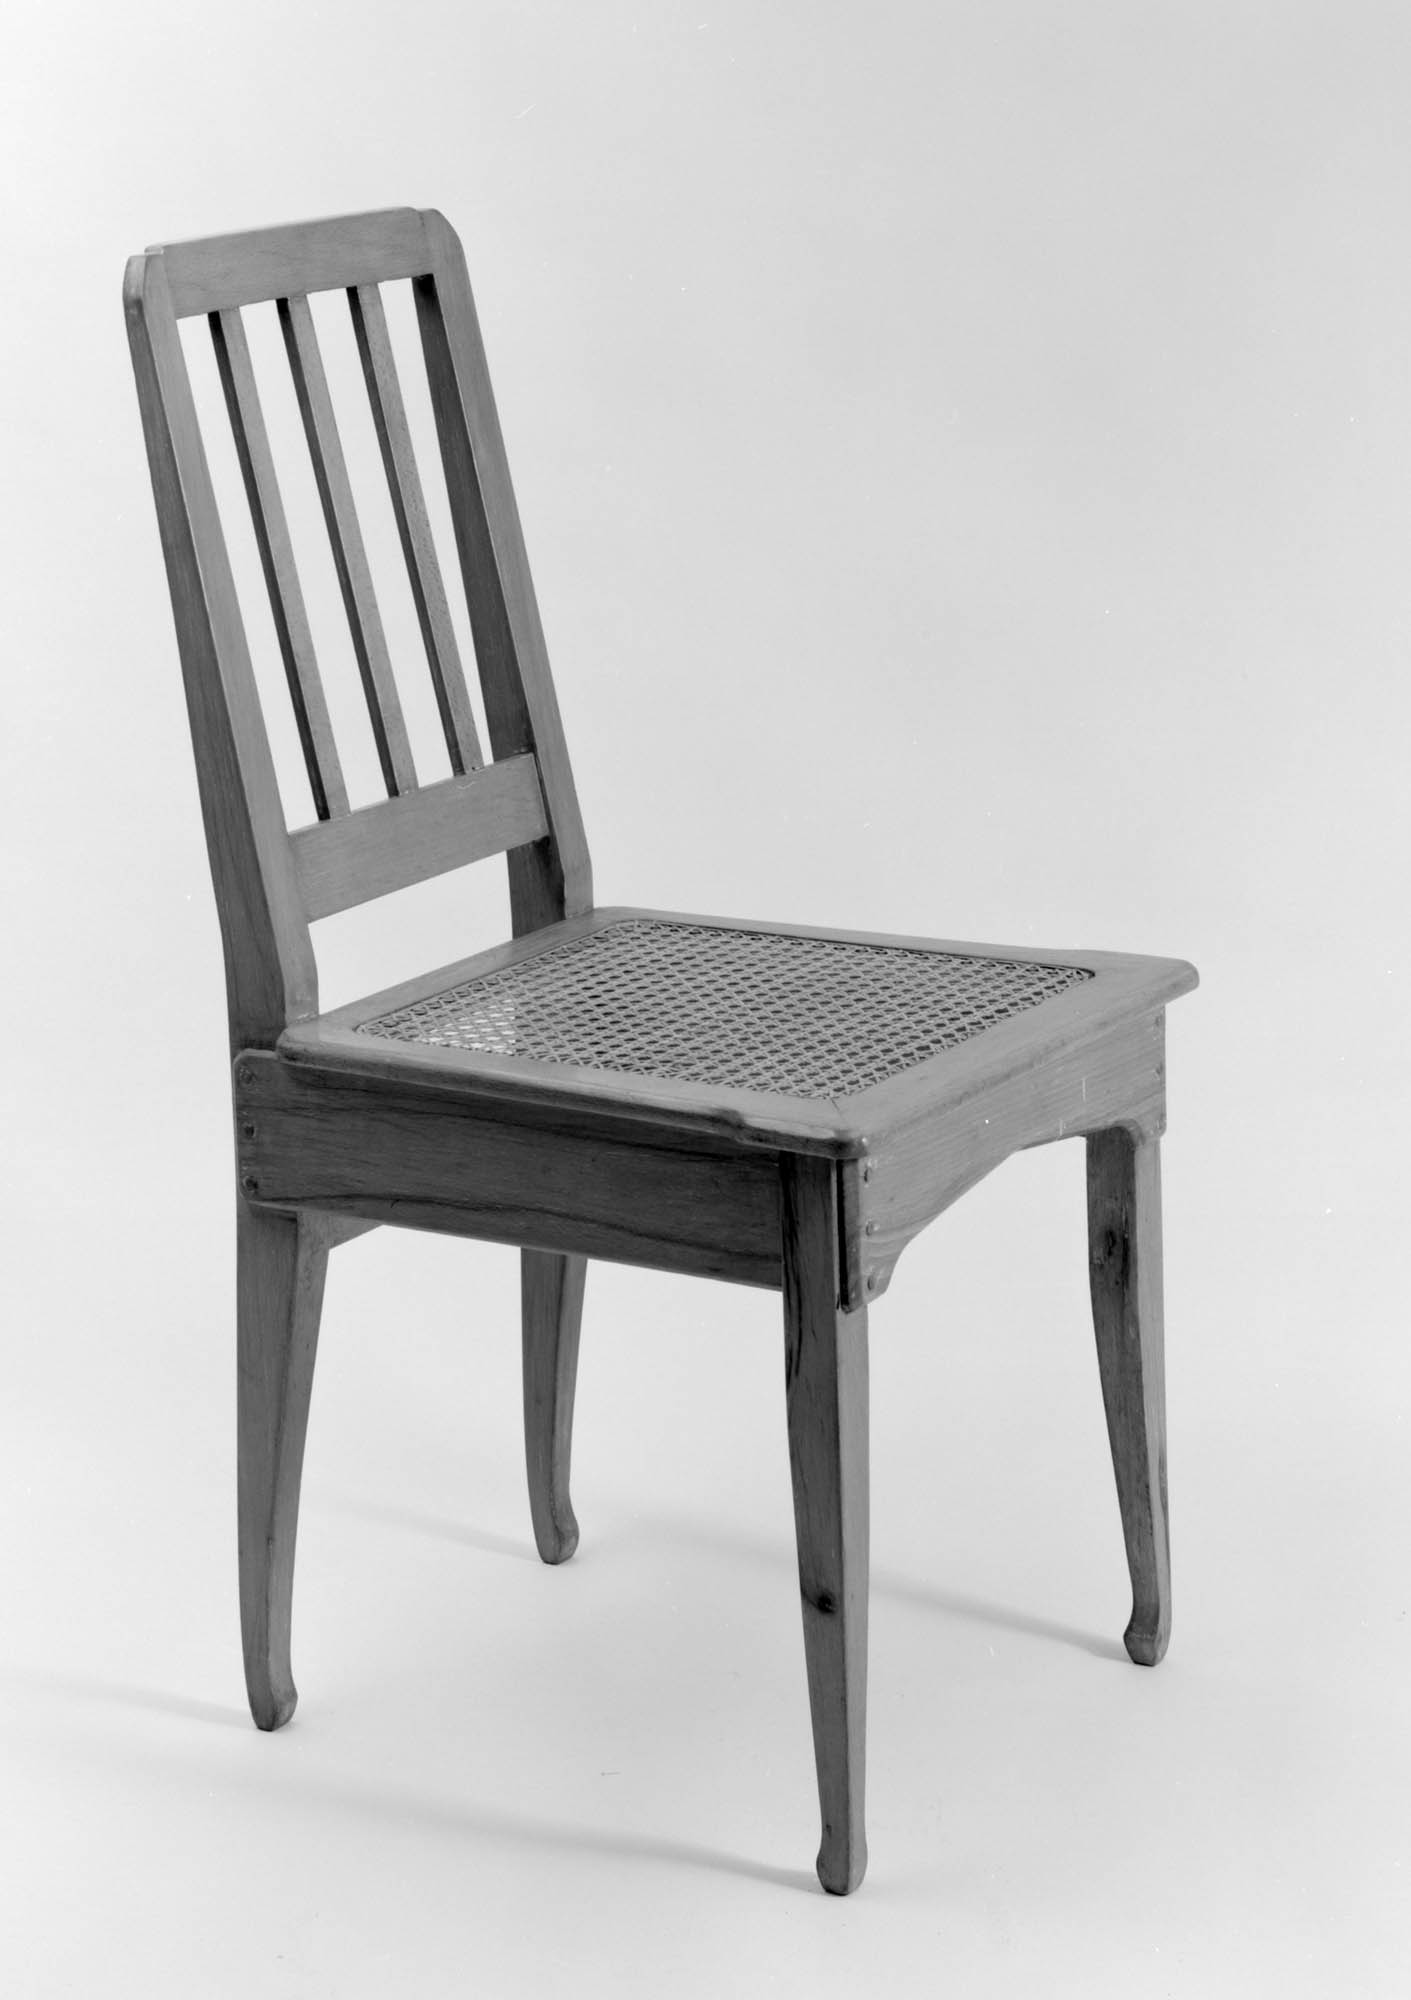 (untitled) Richard Riemerschmid Chair